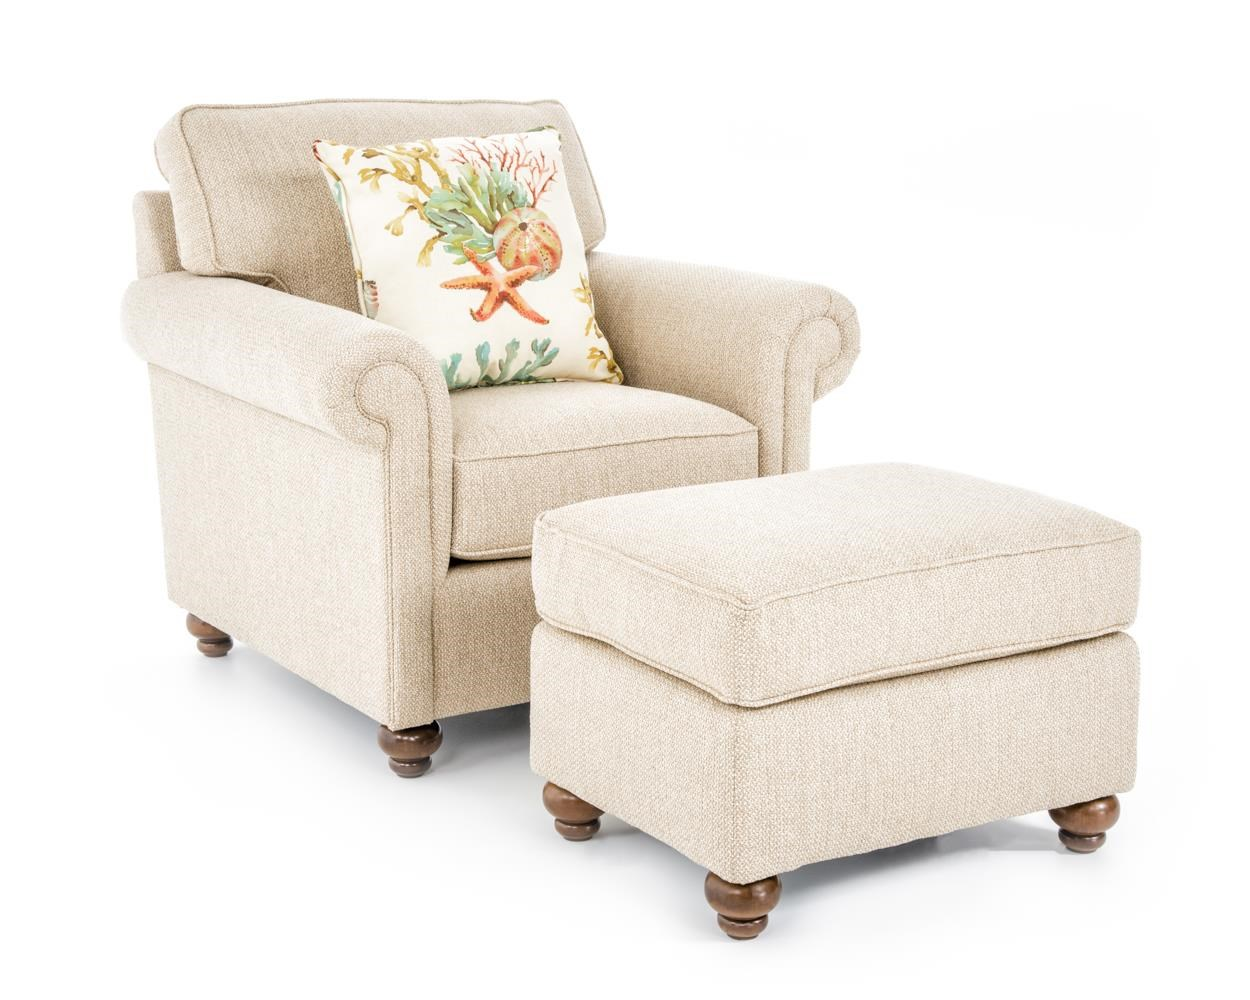 Broyhill Furniture Judd Chair & Ottoman Set - Item Number: 4262-0+4262-5 4189-82